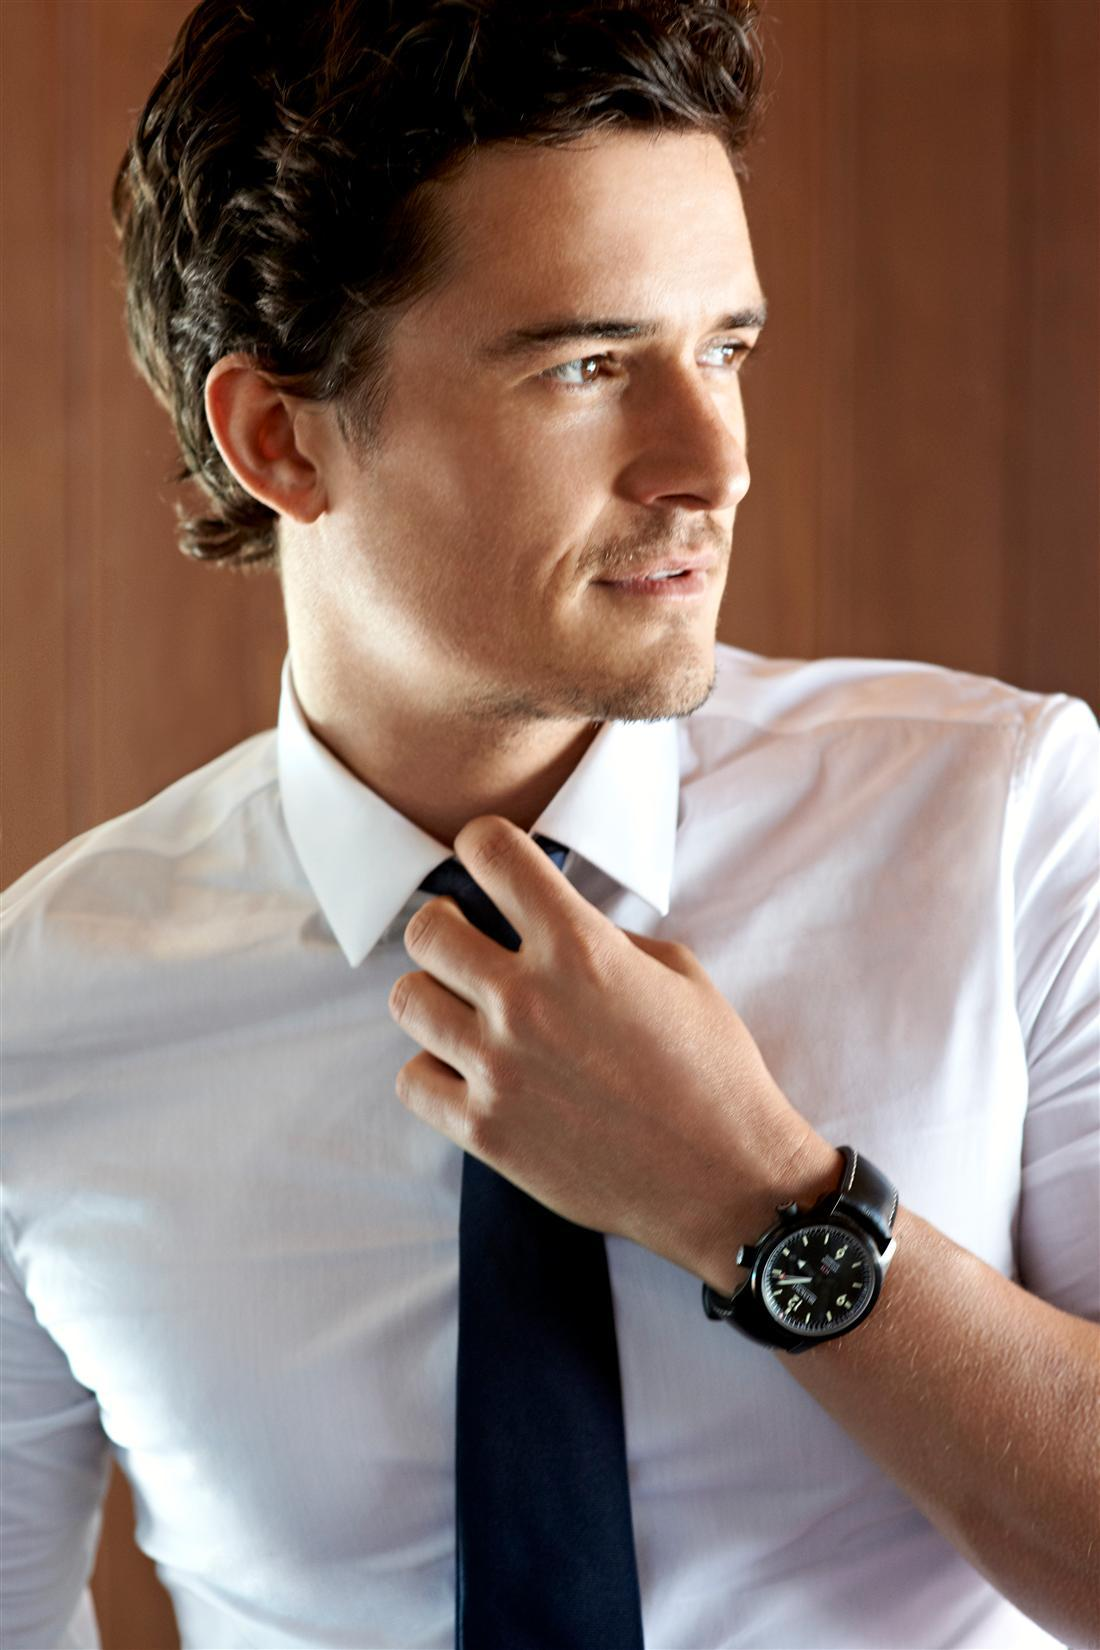 OrlandoBloom2.jpg